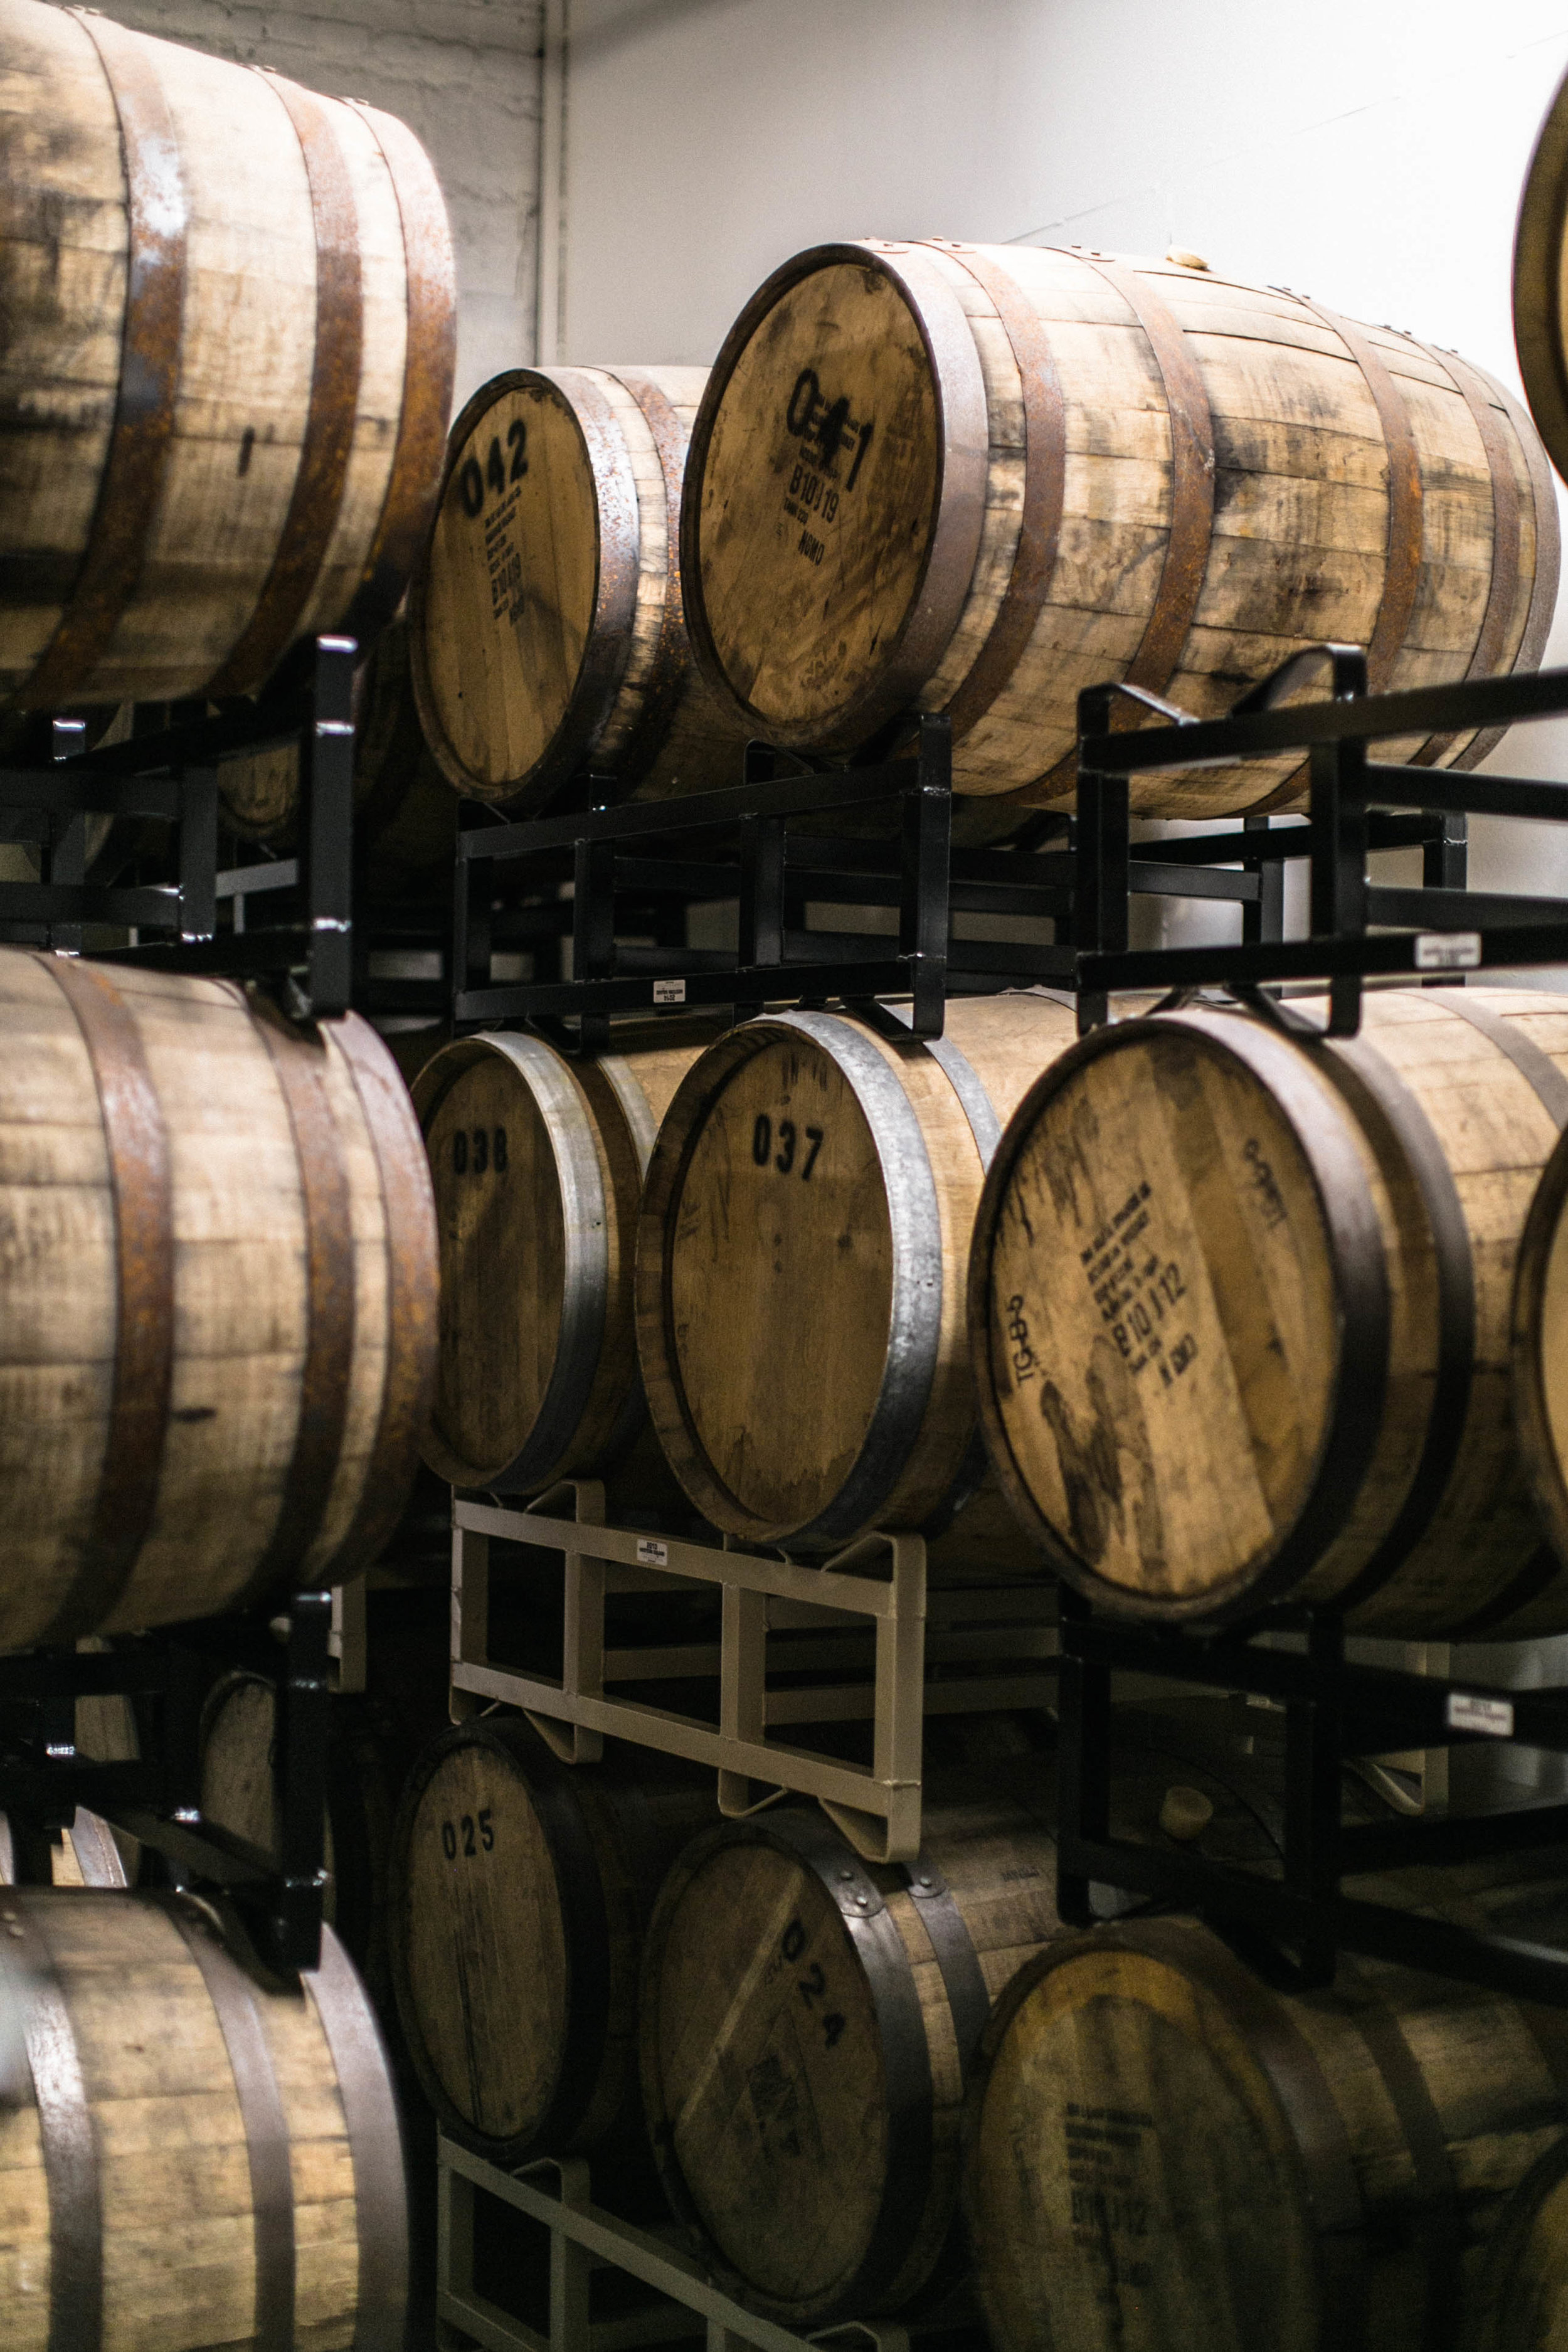 DeAngelo ages his Old Tom gin in bourbon barrels and Oloroso sherry casks.